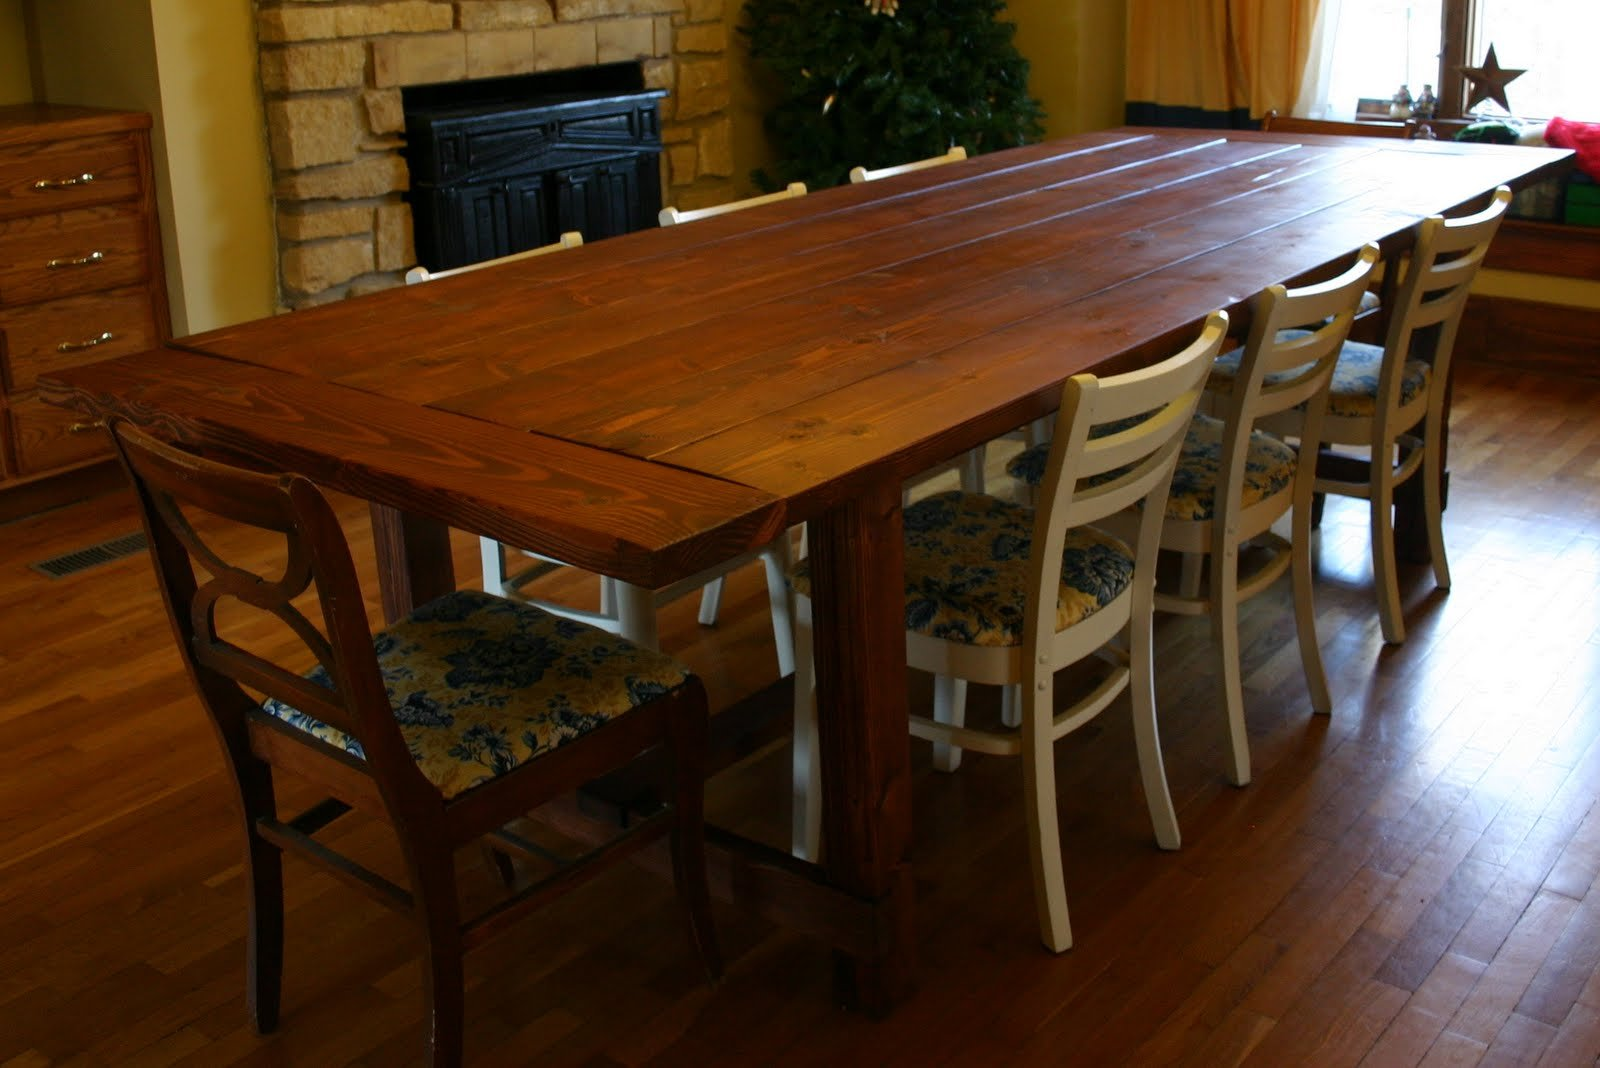 German Jello Salad: Rustic Dining Table I Built From Free Plans: A Blog  Post Is Better Than A Thank You Card, Right?